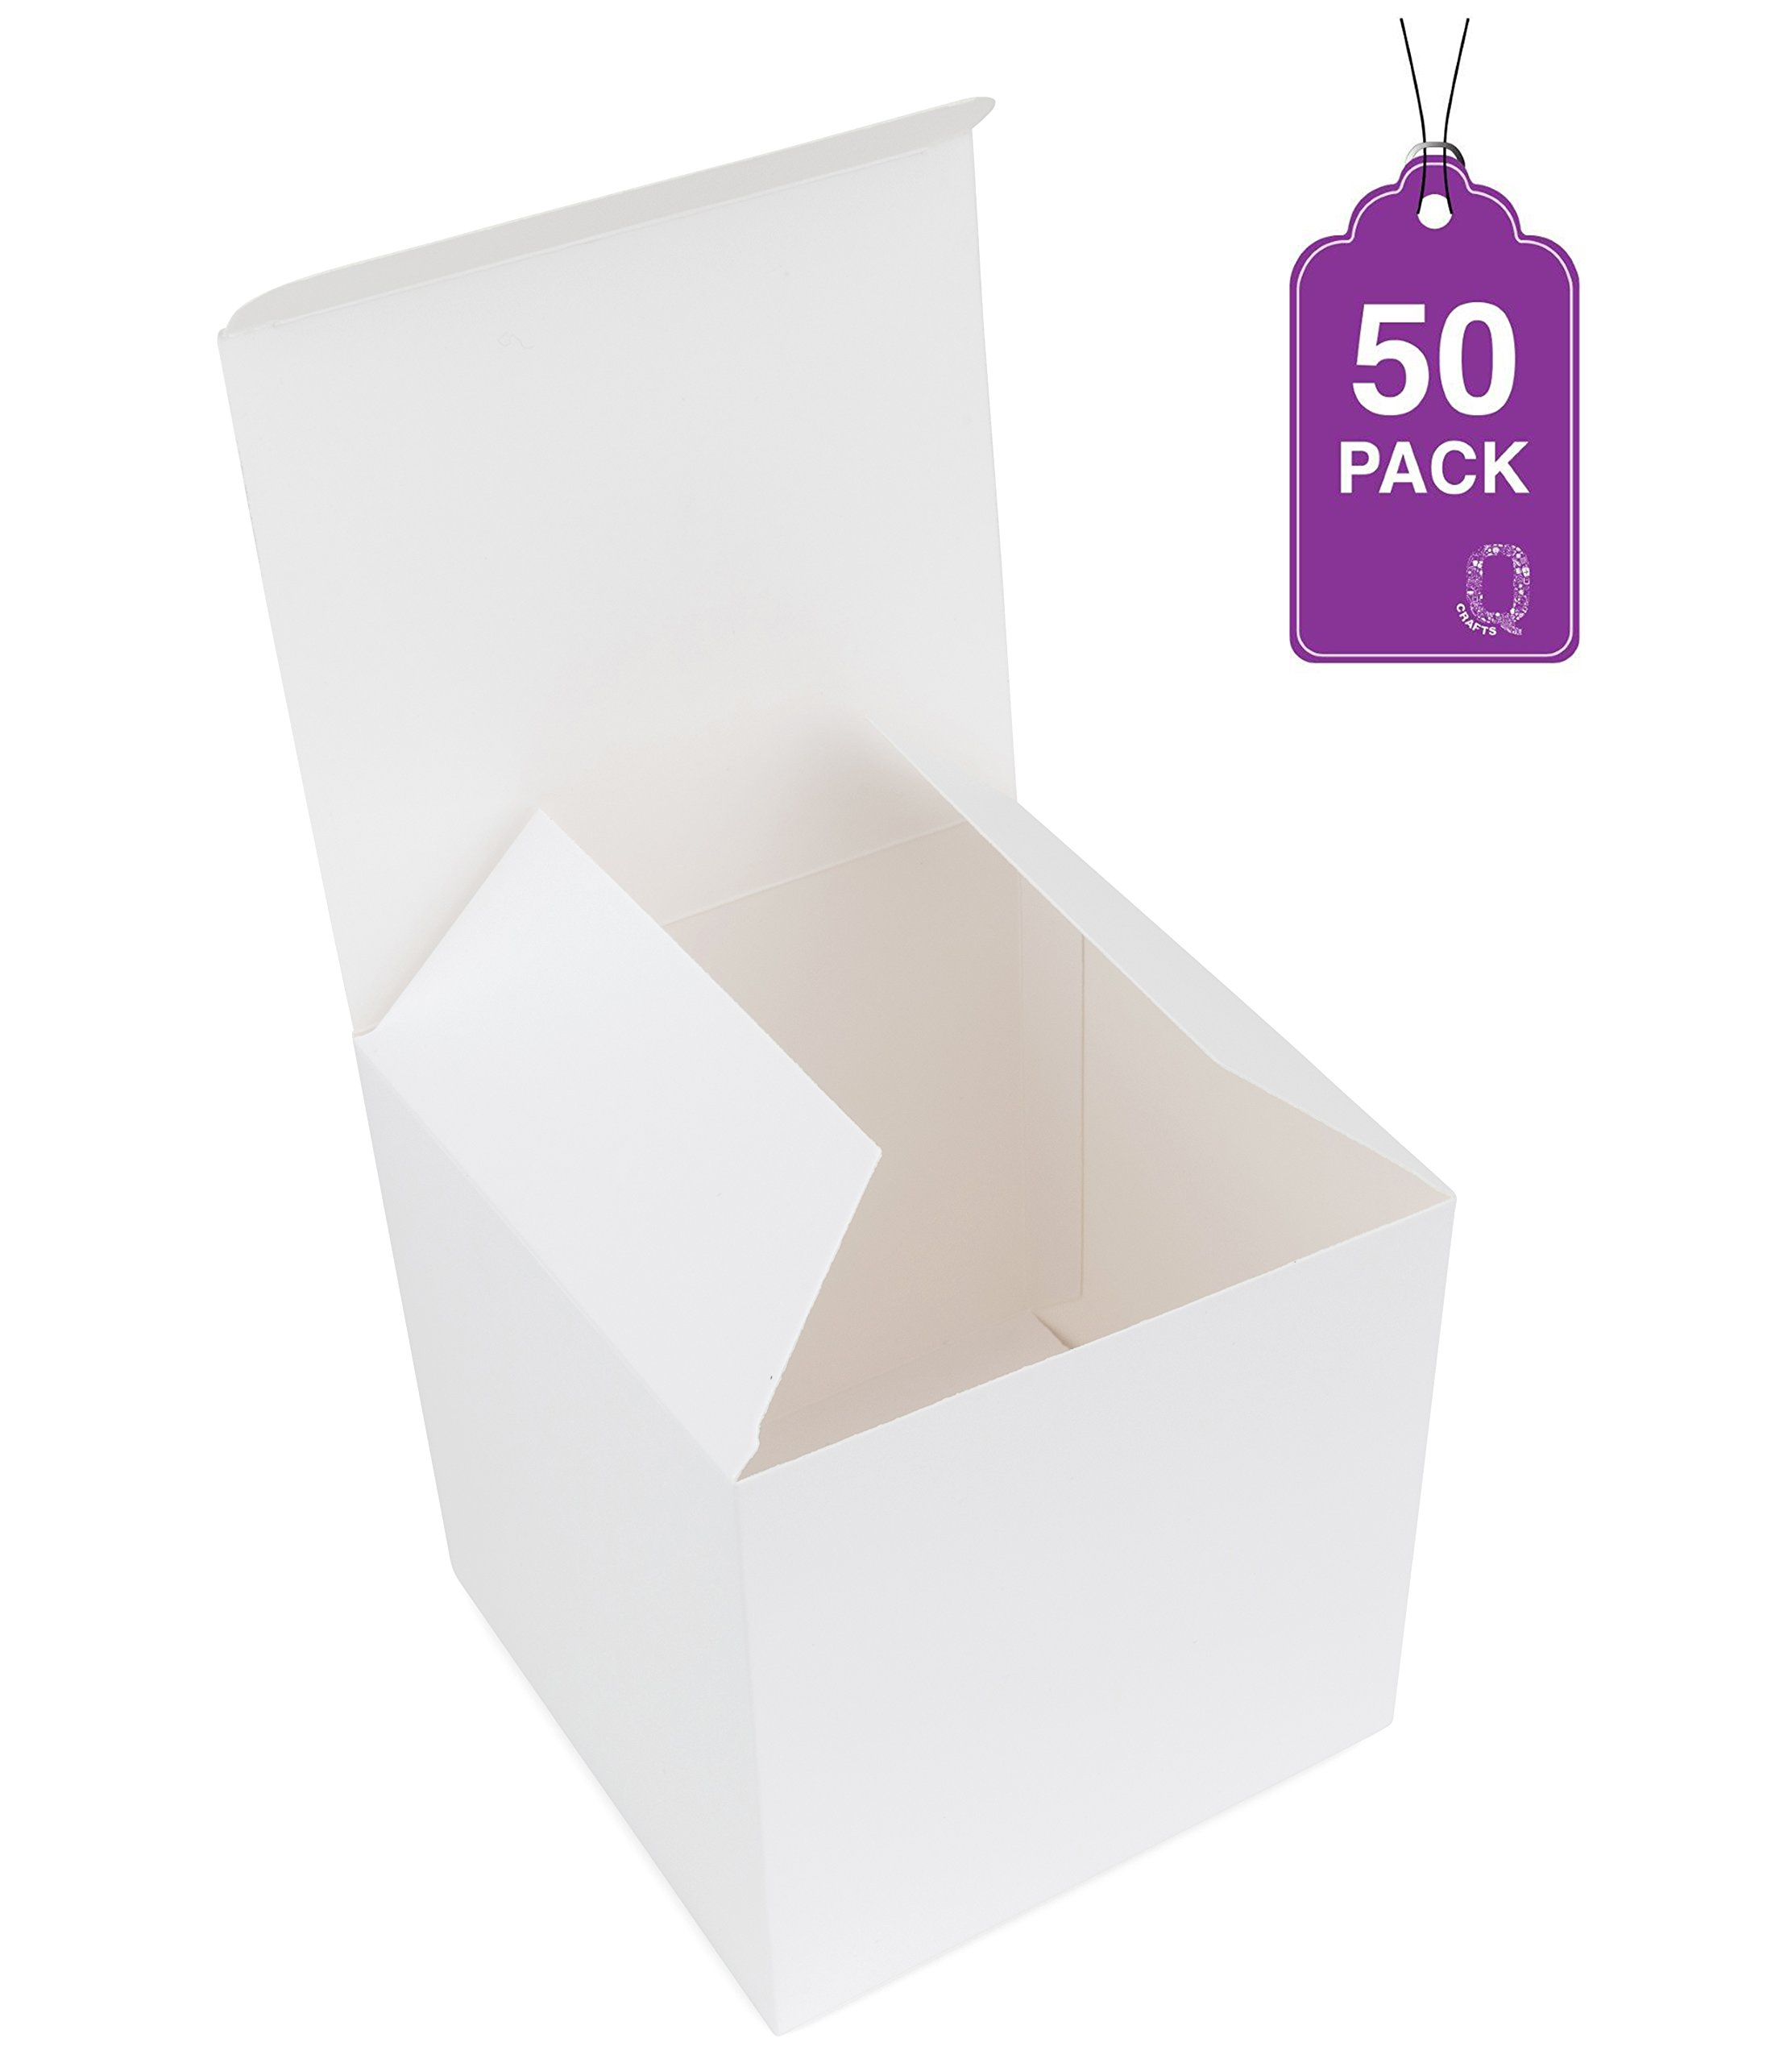 Gift Boxes White 50 Pack 4 x 4 x 4 Great For All Occasions Cupcake boxes, Craft box